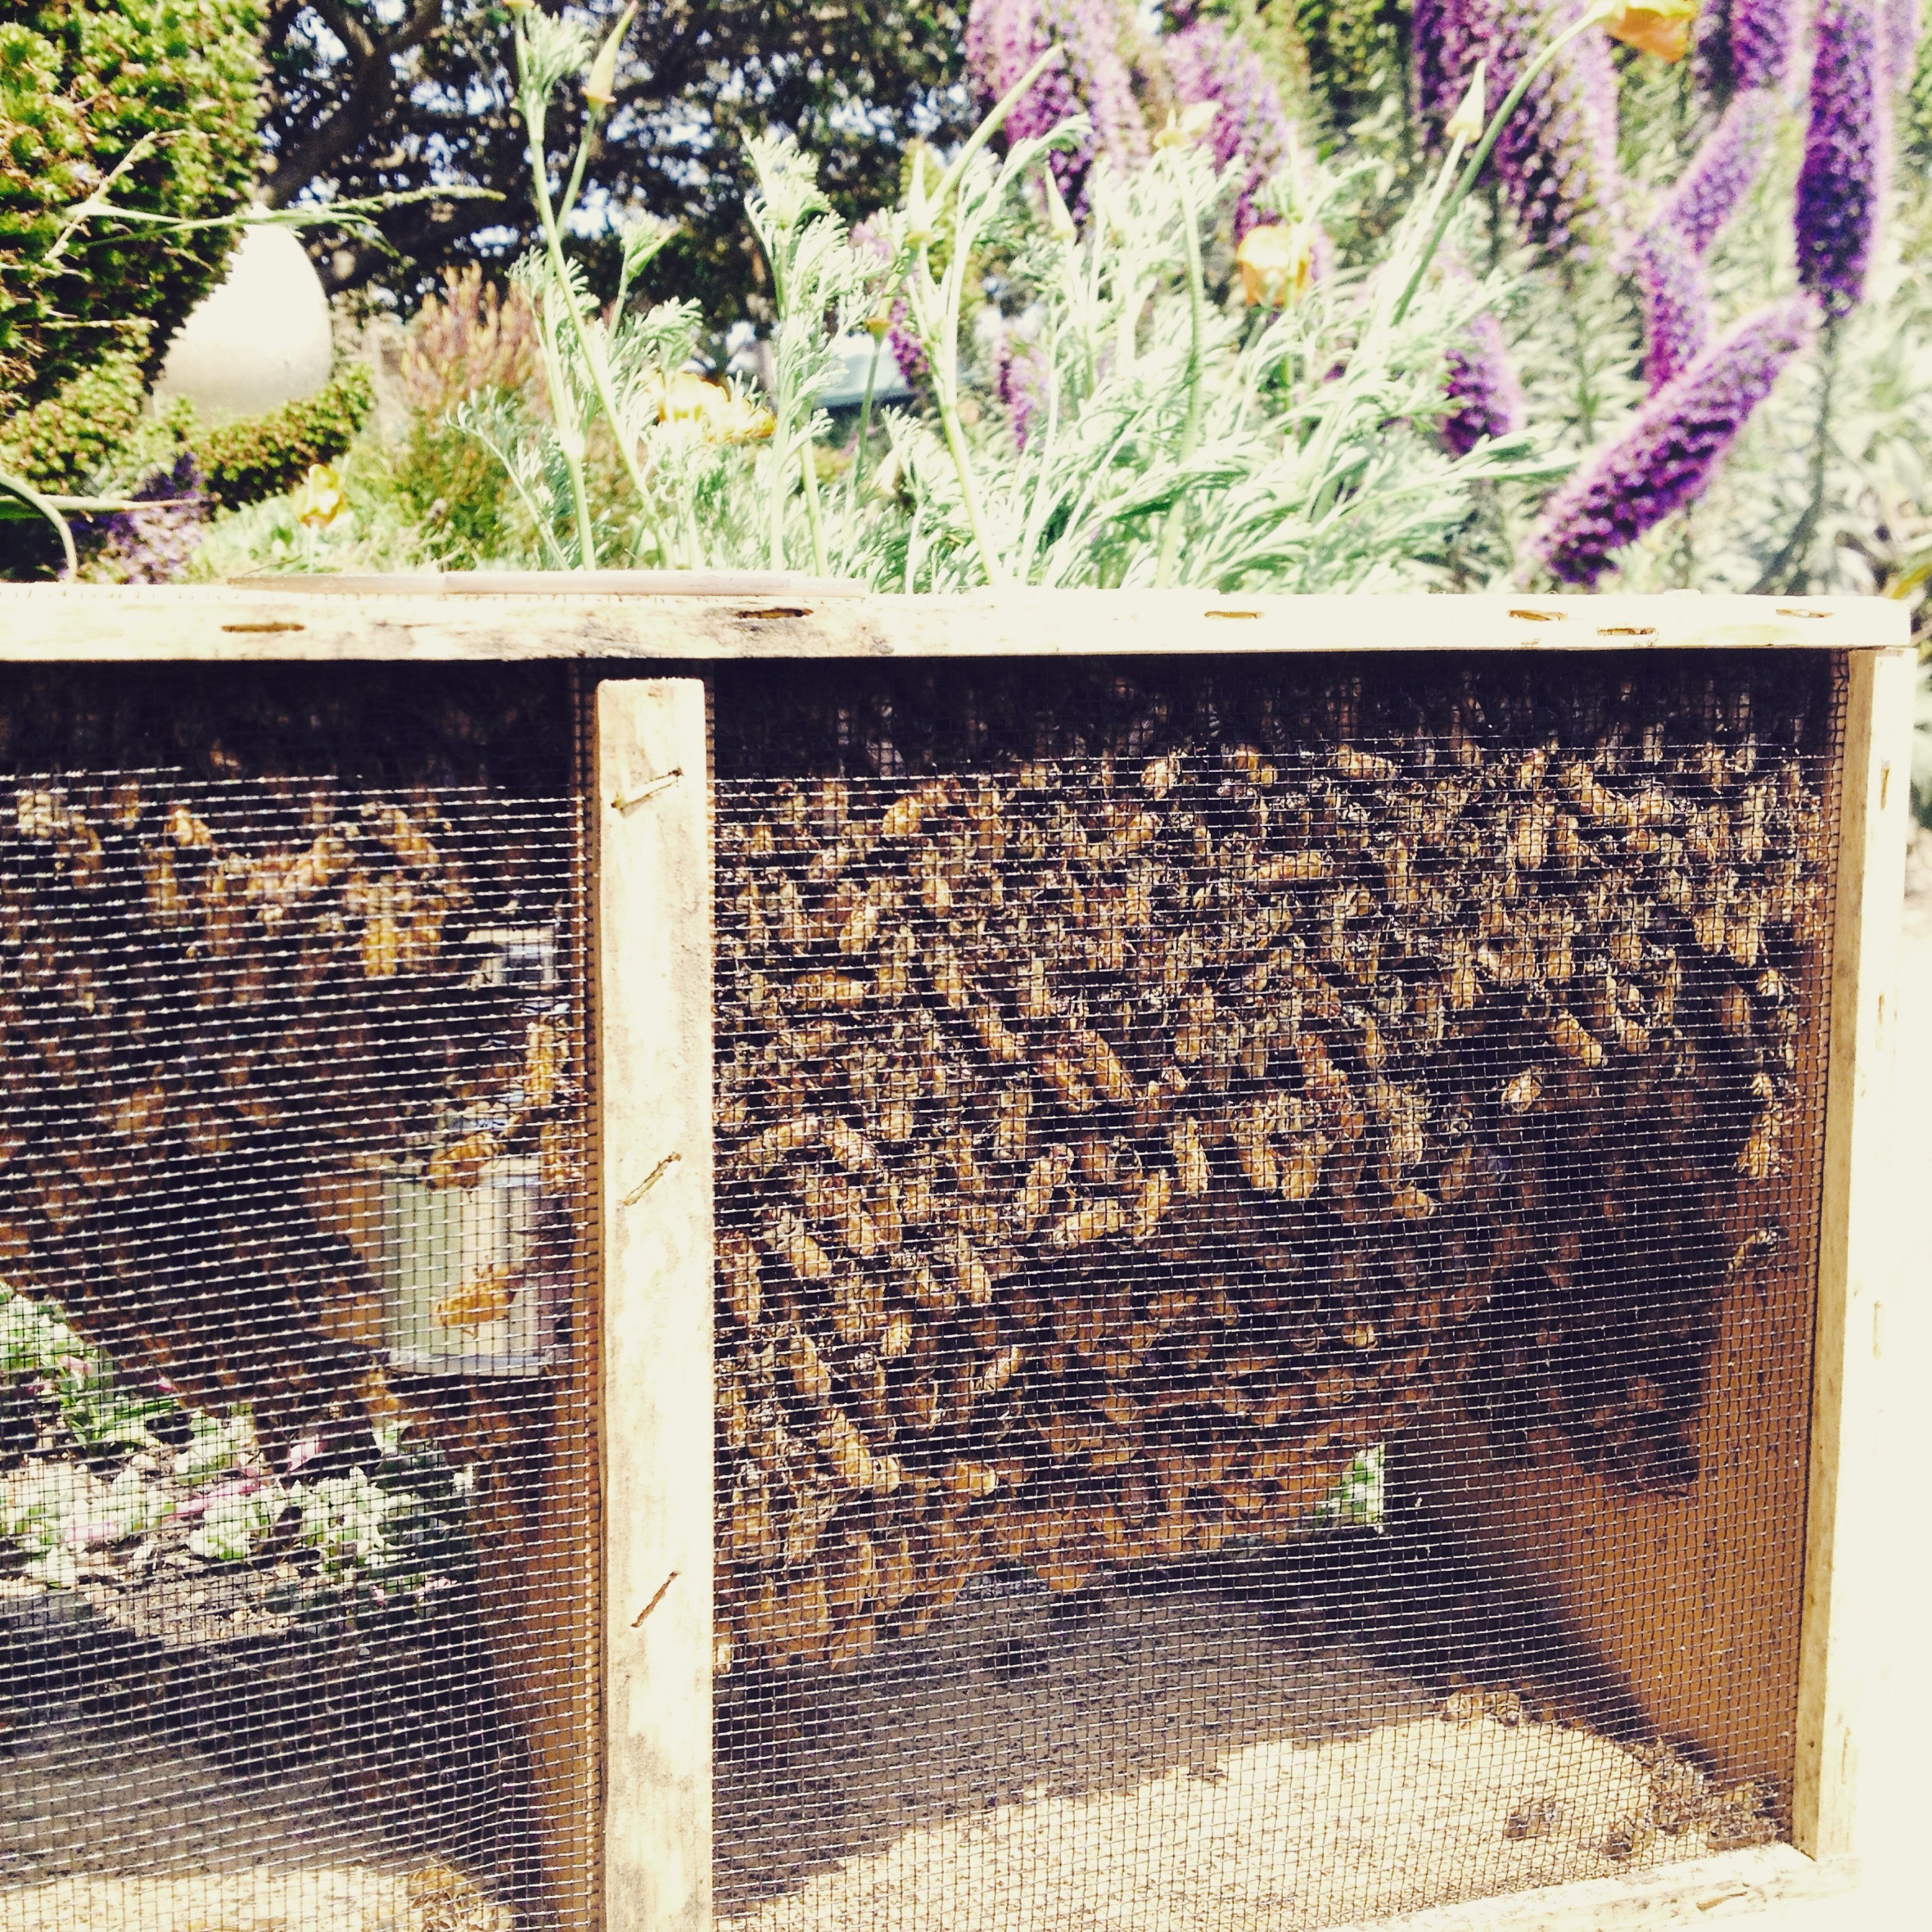 A package of bees from  Bee Kind  in Sebastopol, CA.